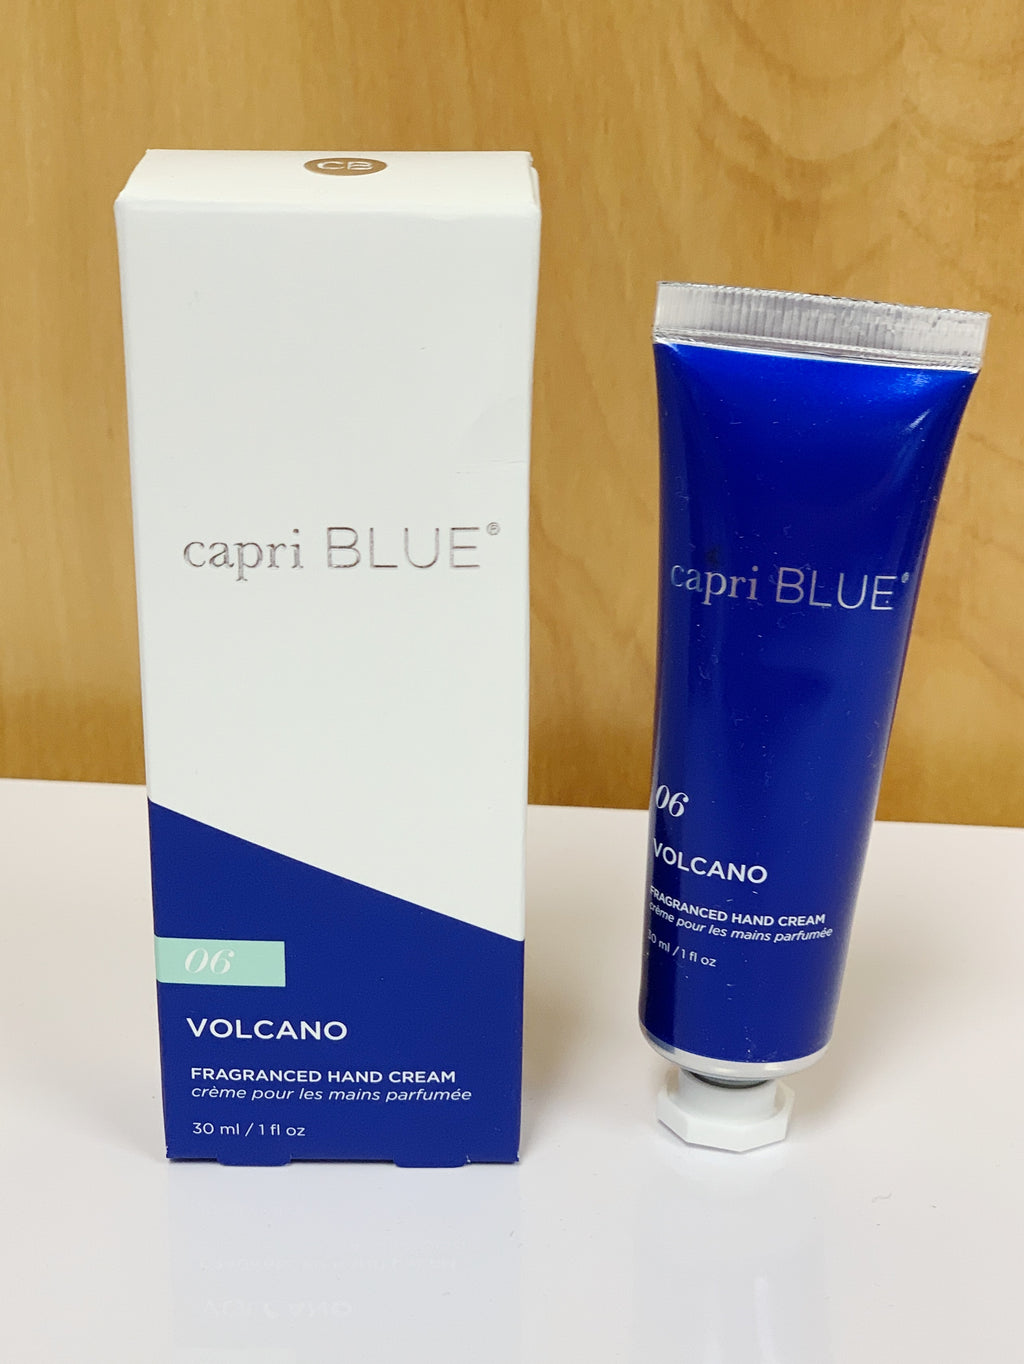 Capri Blue Mini Hand Cream - Volcano